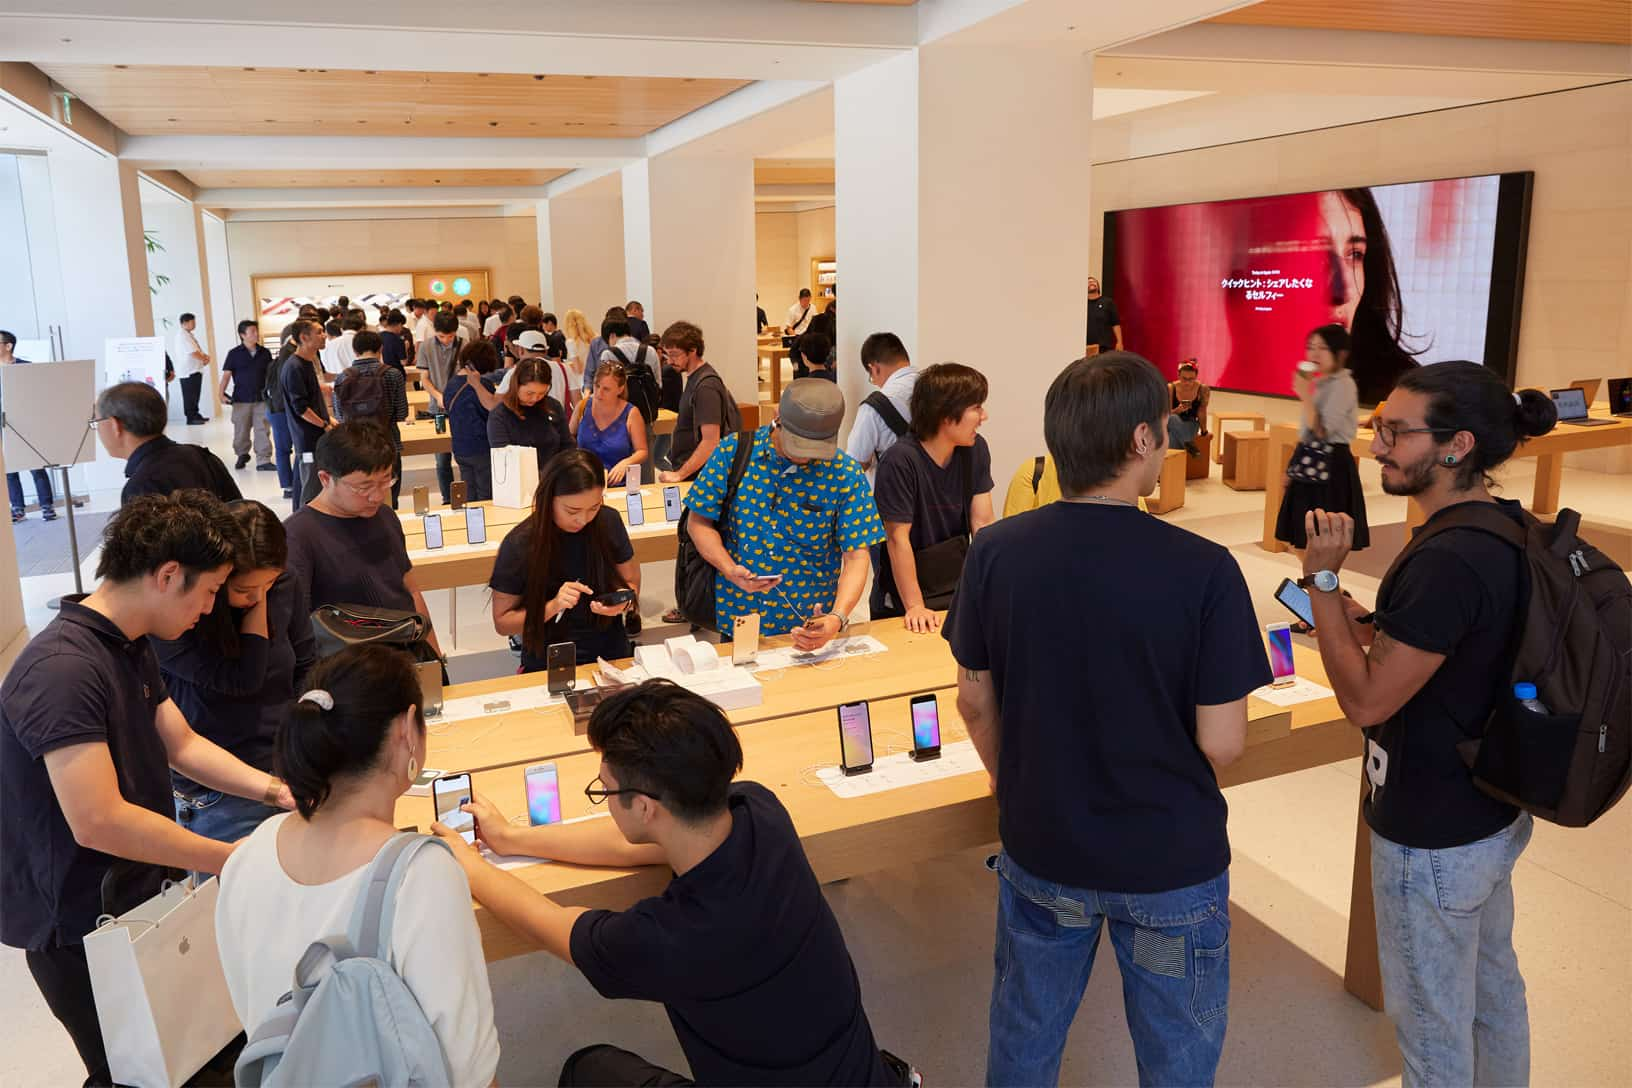 Apple Iphone 11 Pro Apple Watch 5 Availability Tokyo Store Interior 092019